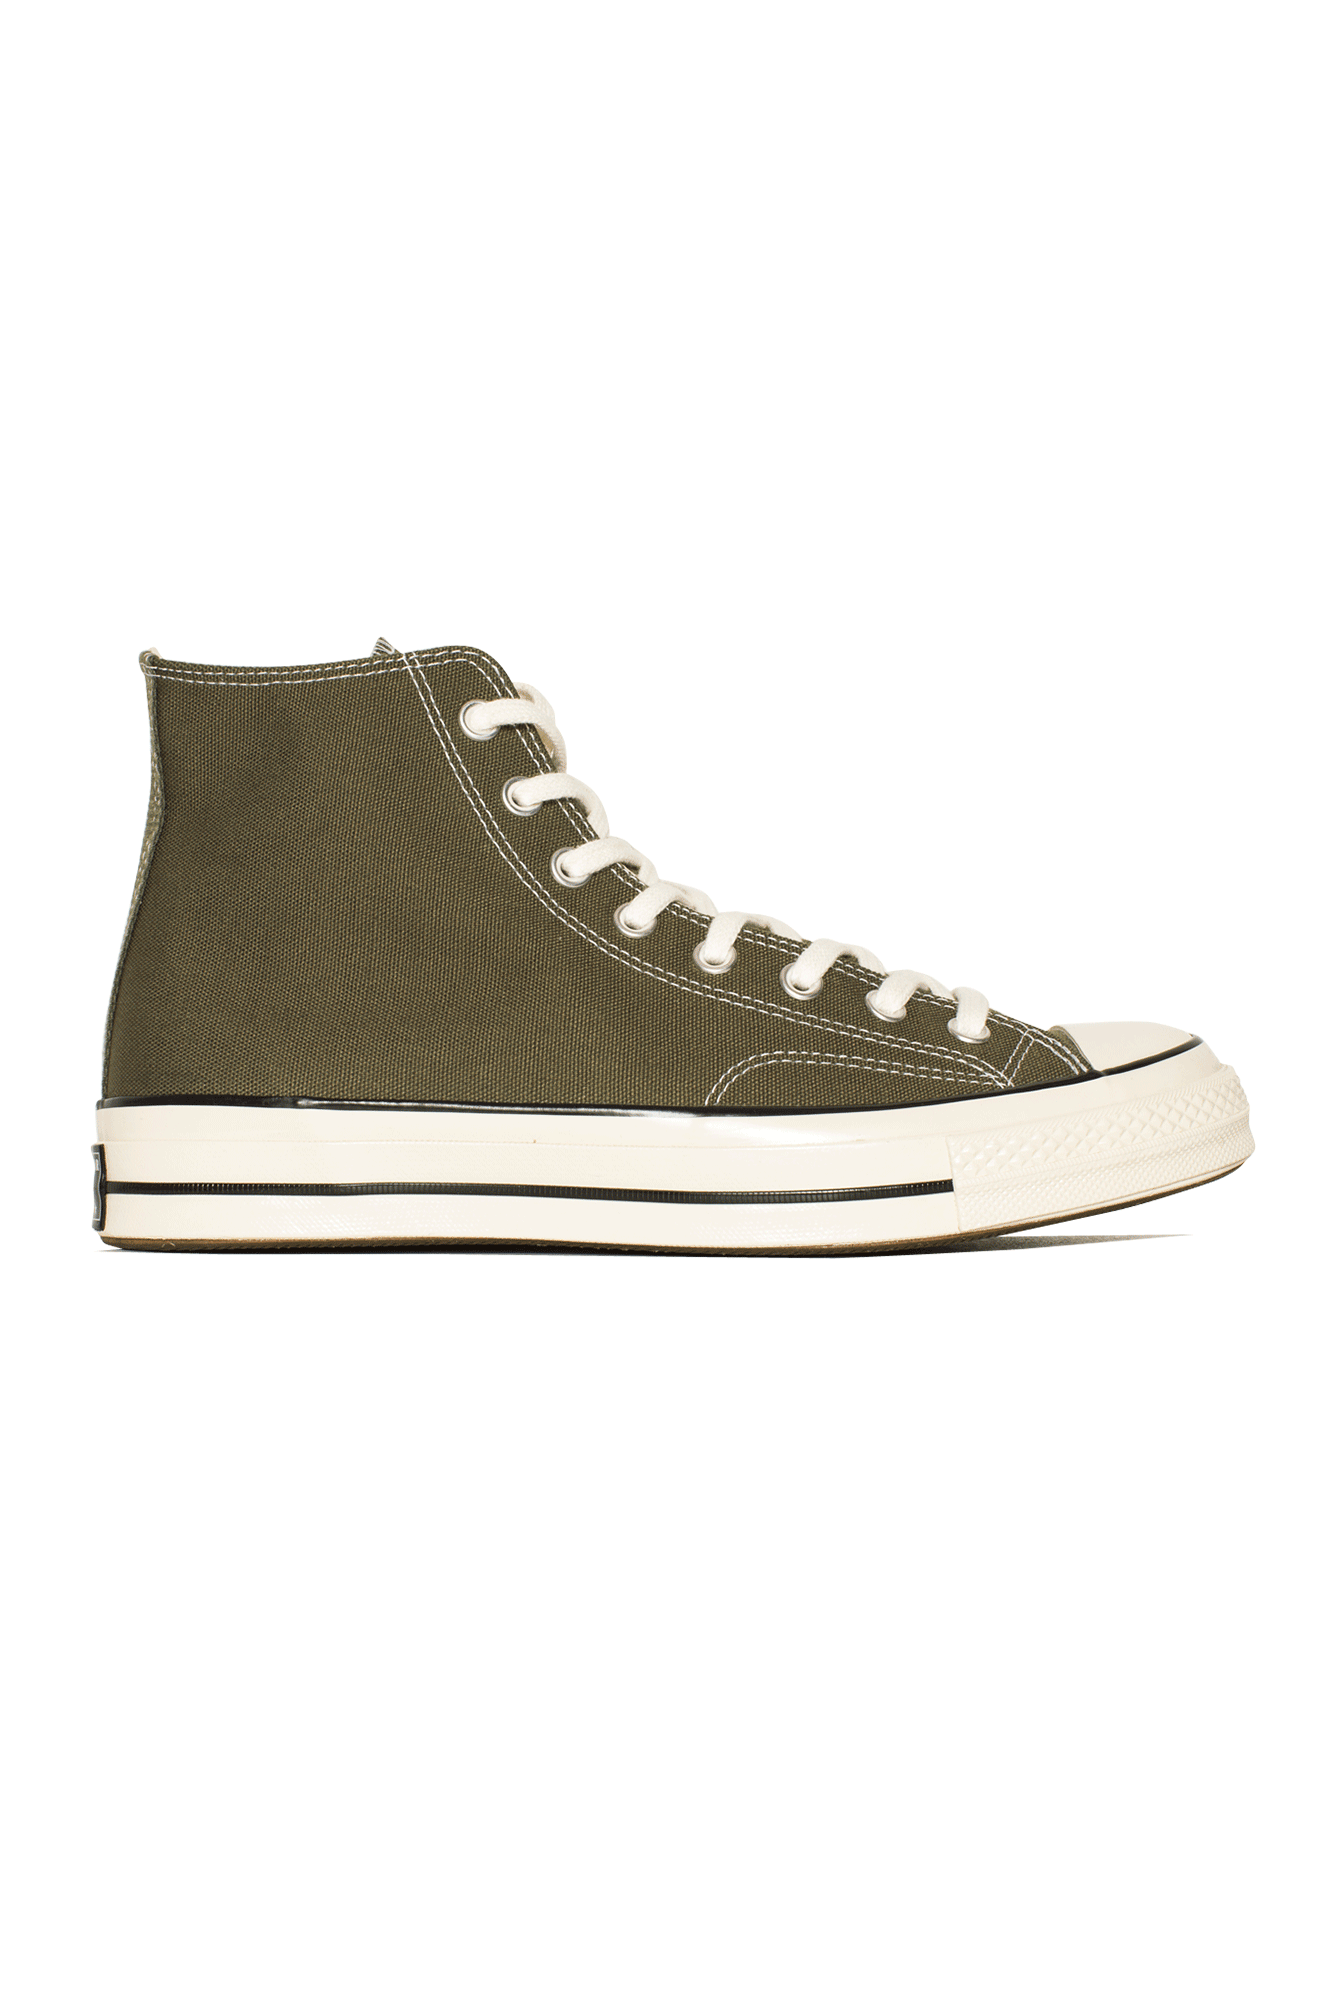 converse all star 70s verde